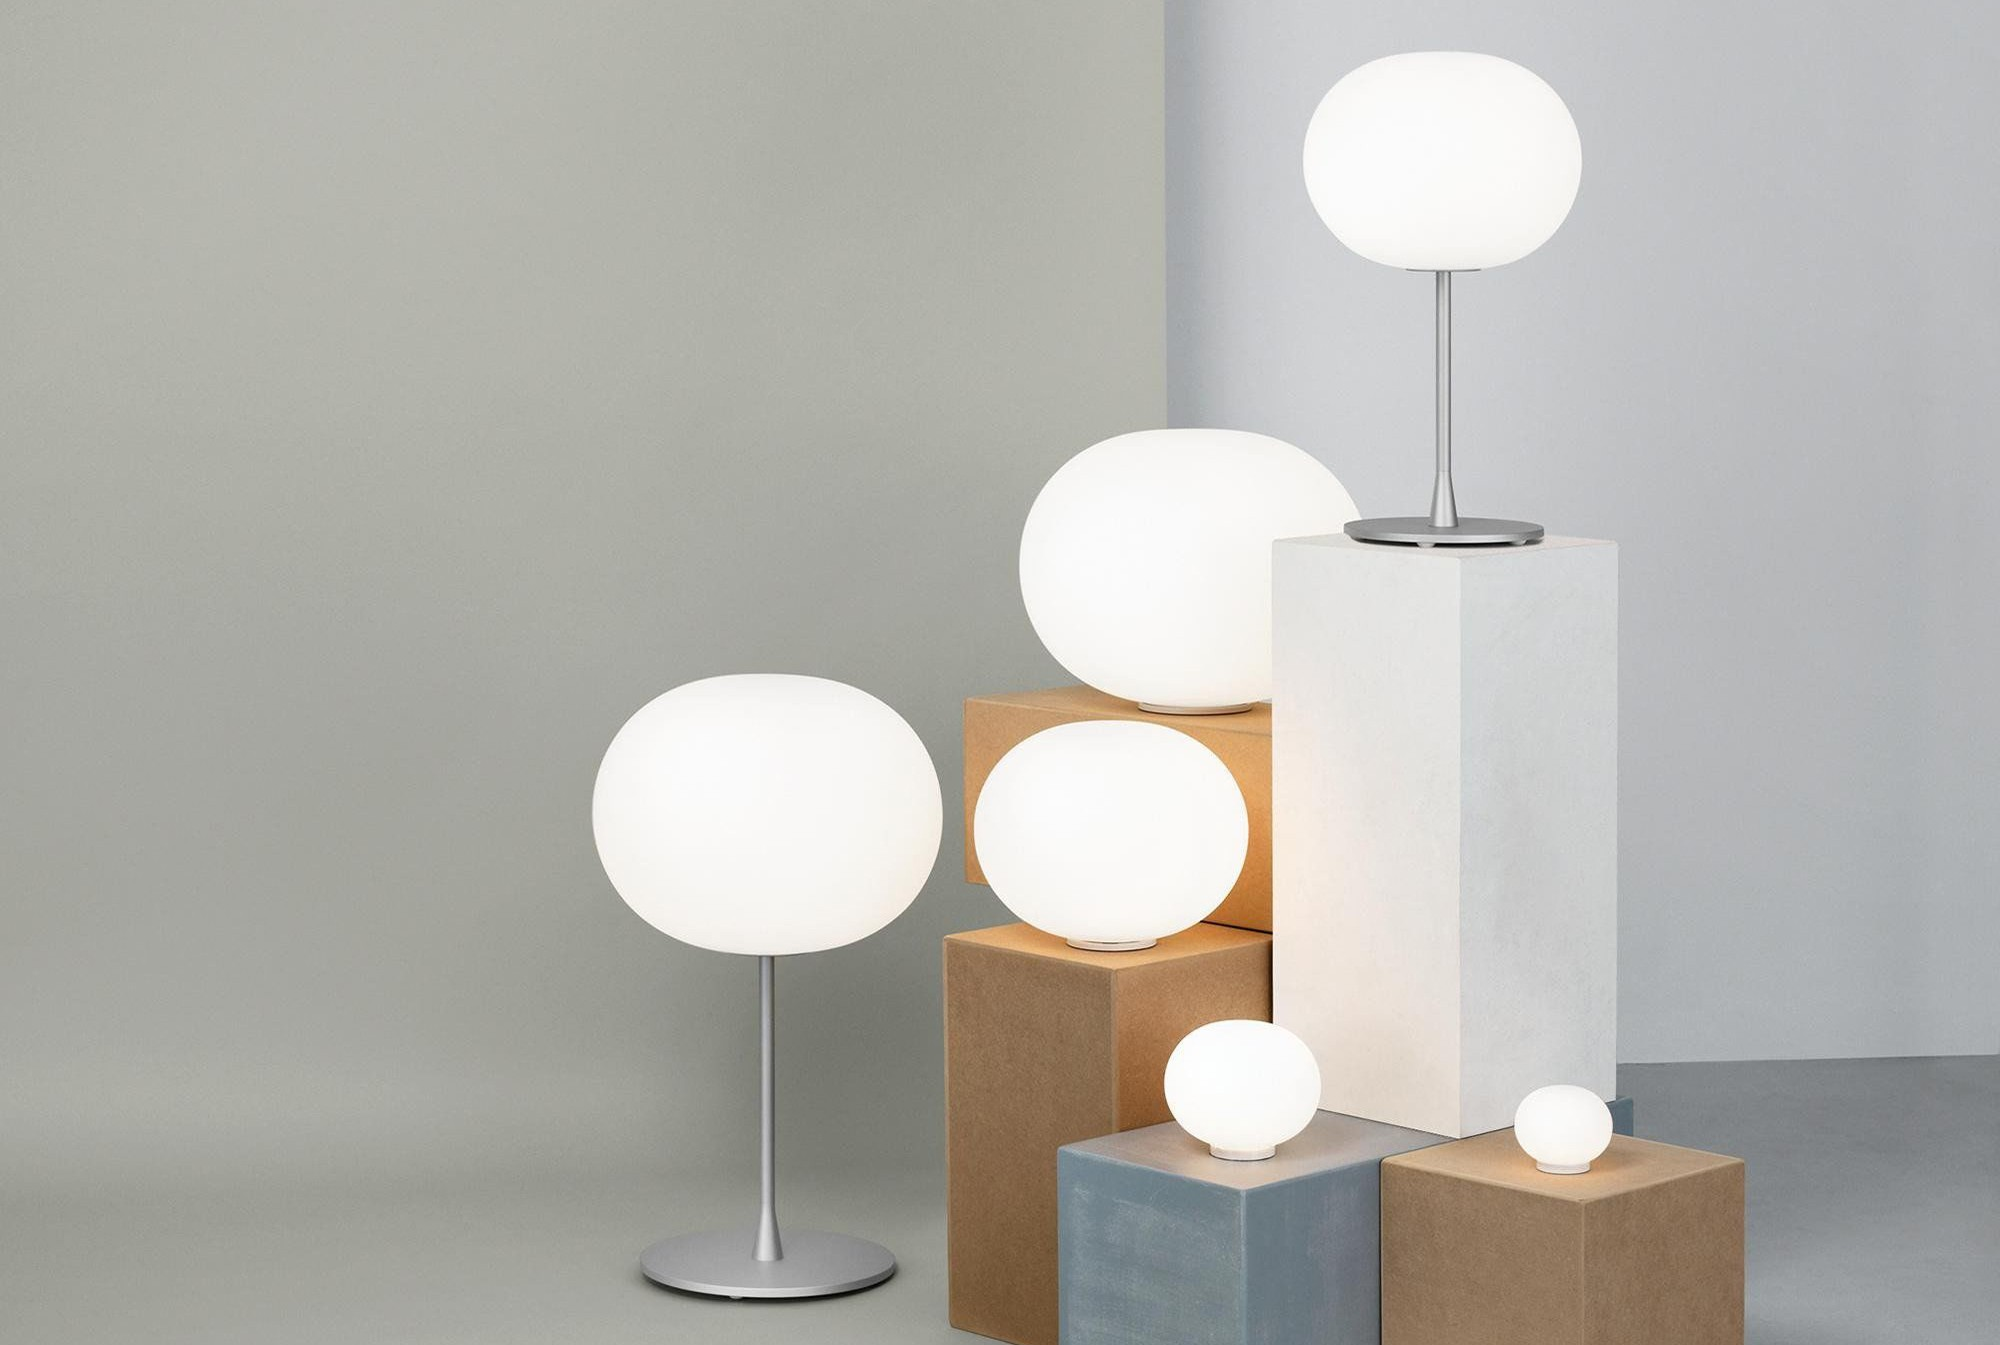 BALL Bordlampe | Bohus | Lampebord, Lamper, Ball